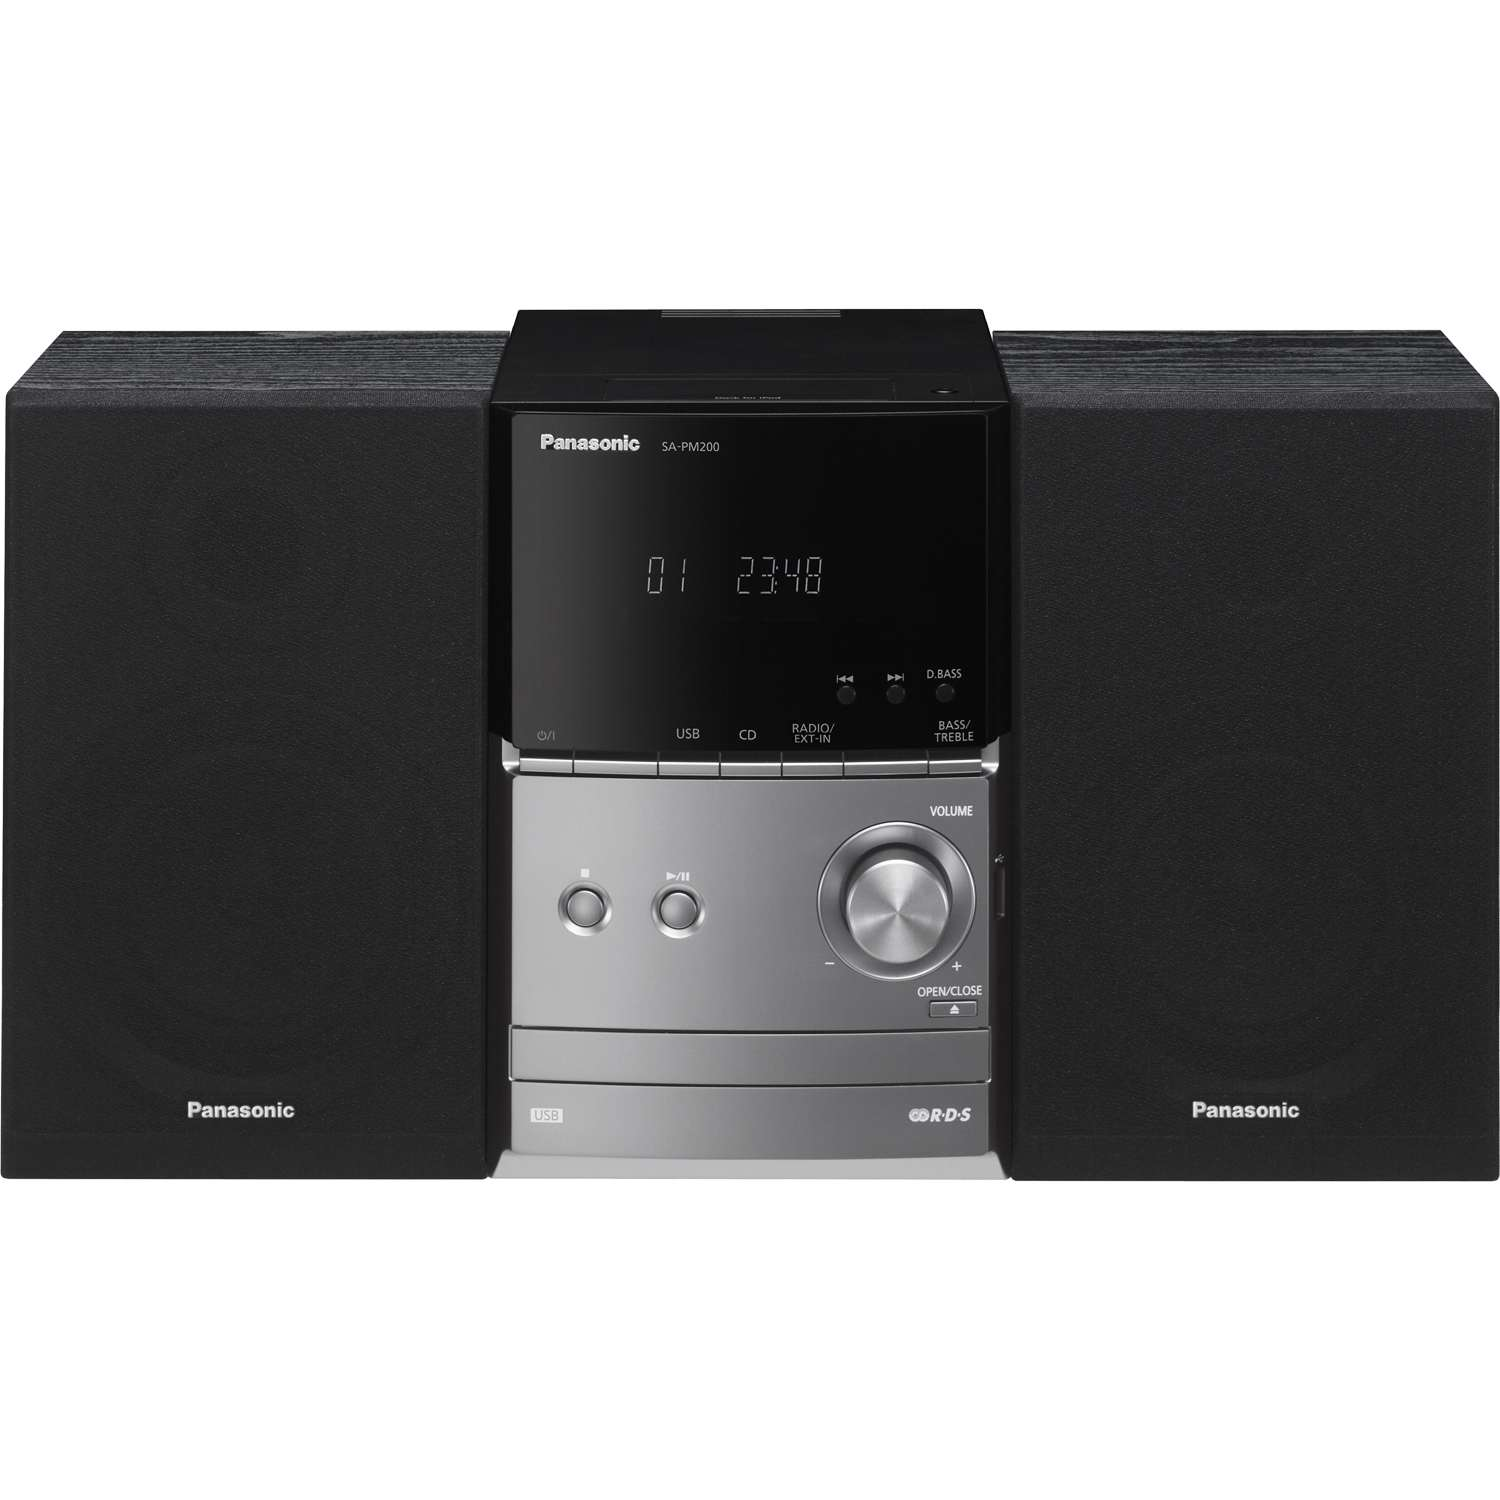 panasonic sc pm200eb s 20w micro system cd player with fm. Black Bedroom Furniture Sets. Home Design Ideas